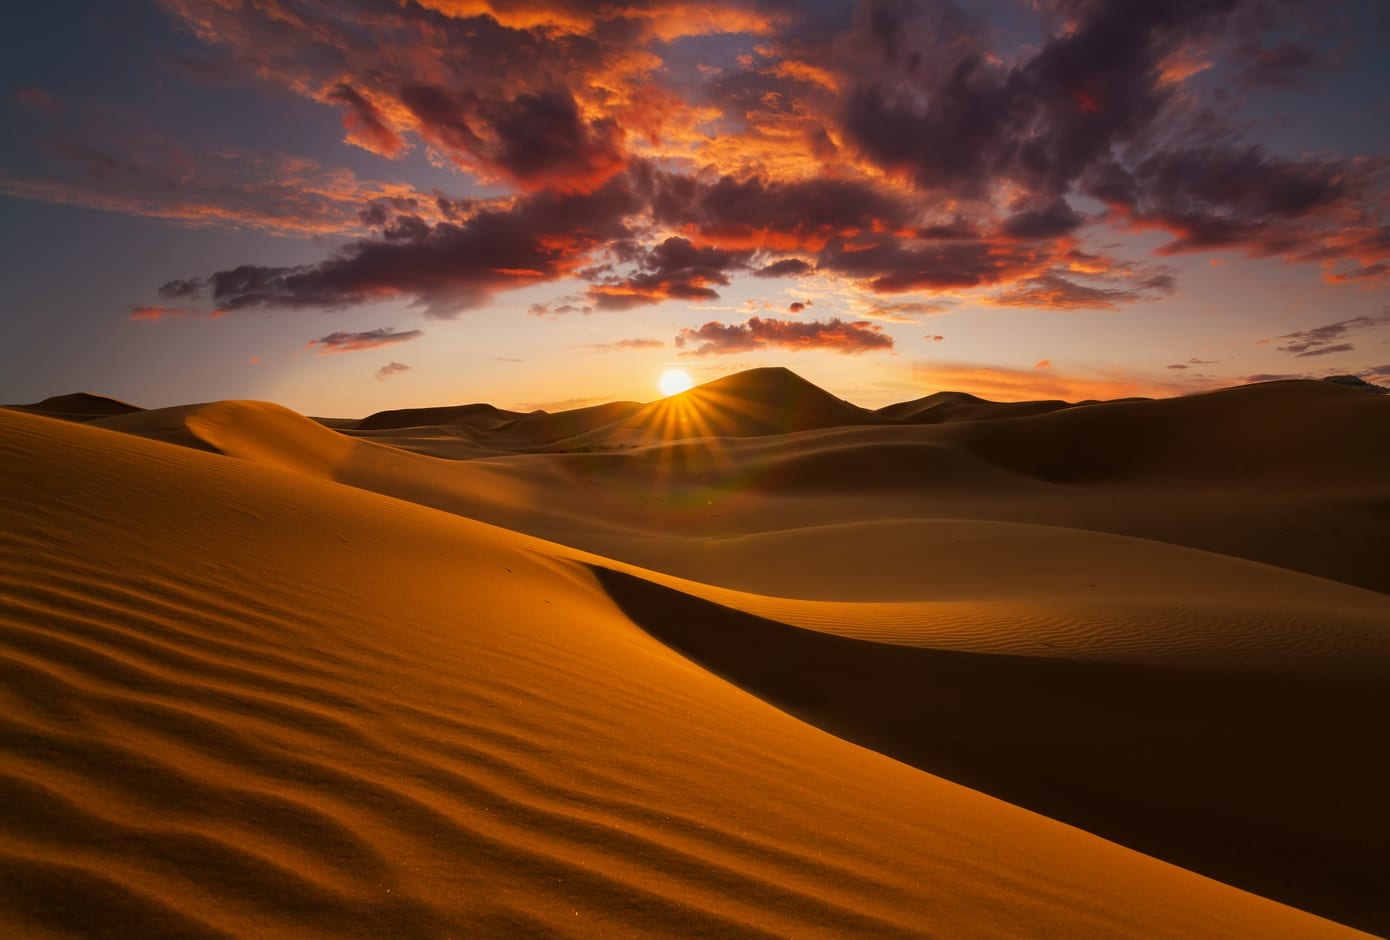 A stunning pink sunset at the Sahara desert.